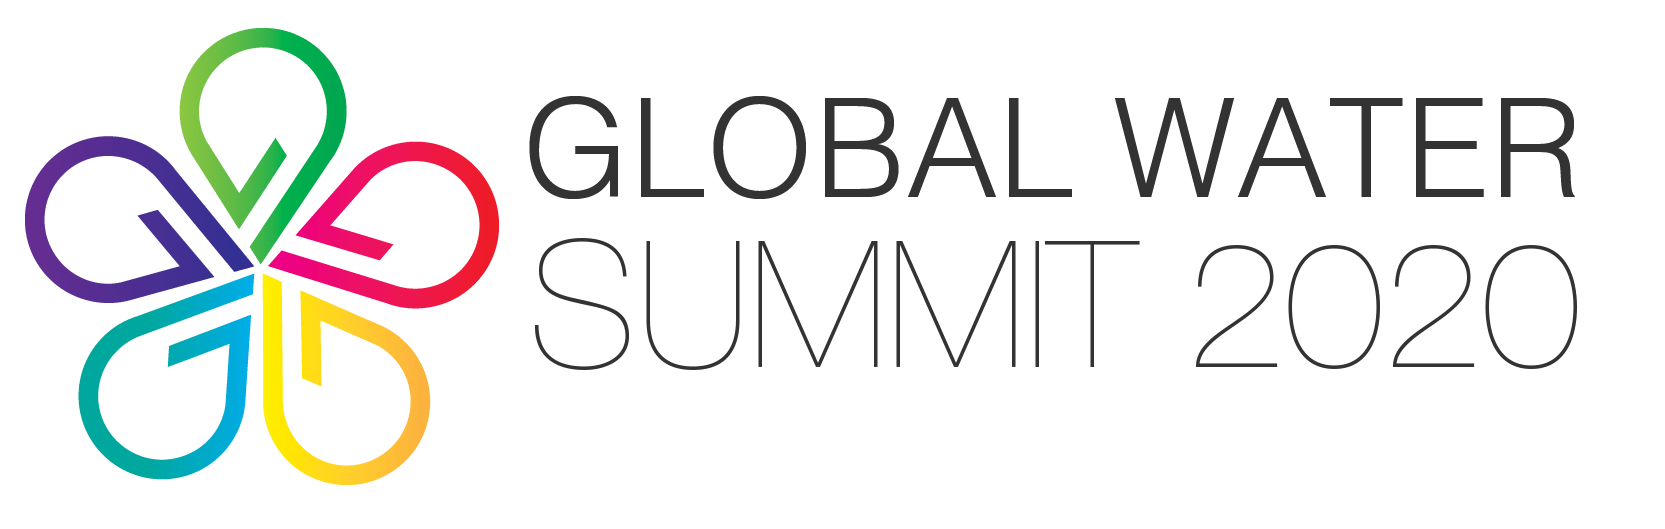 Global Water Summit 2020